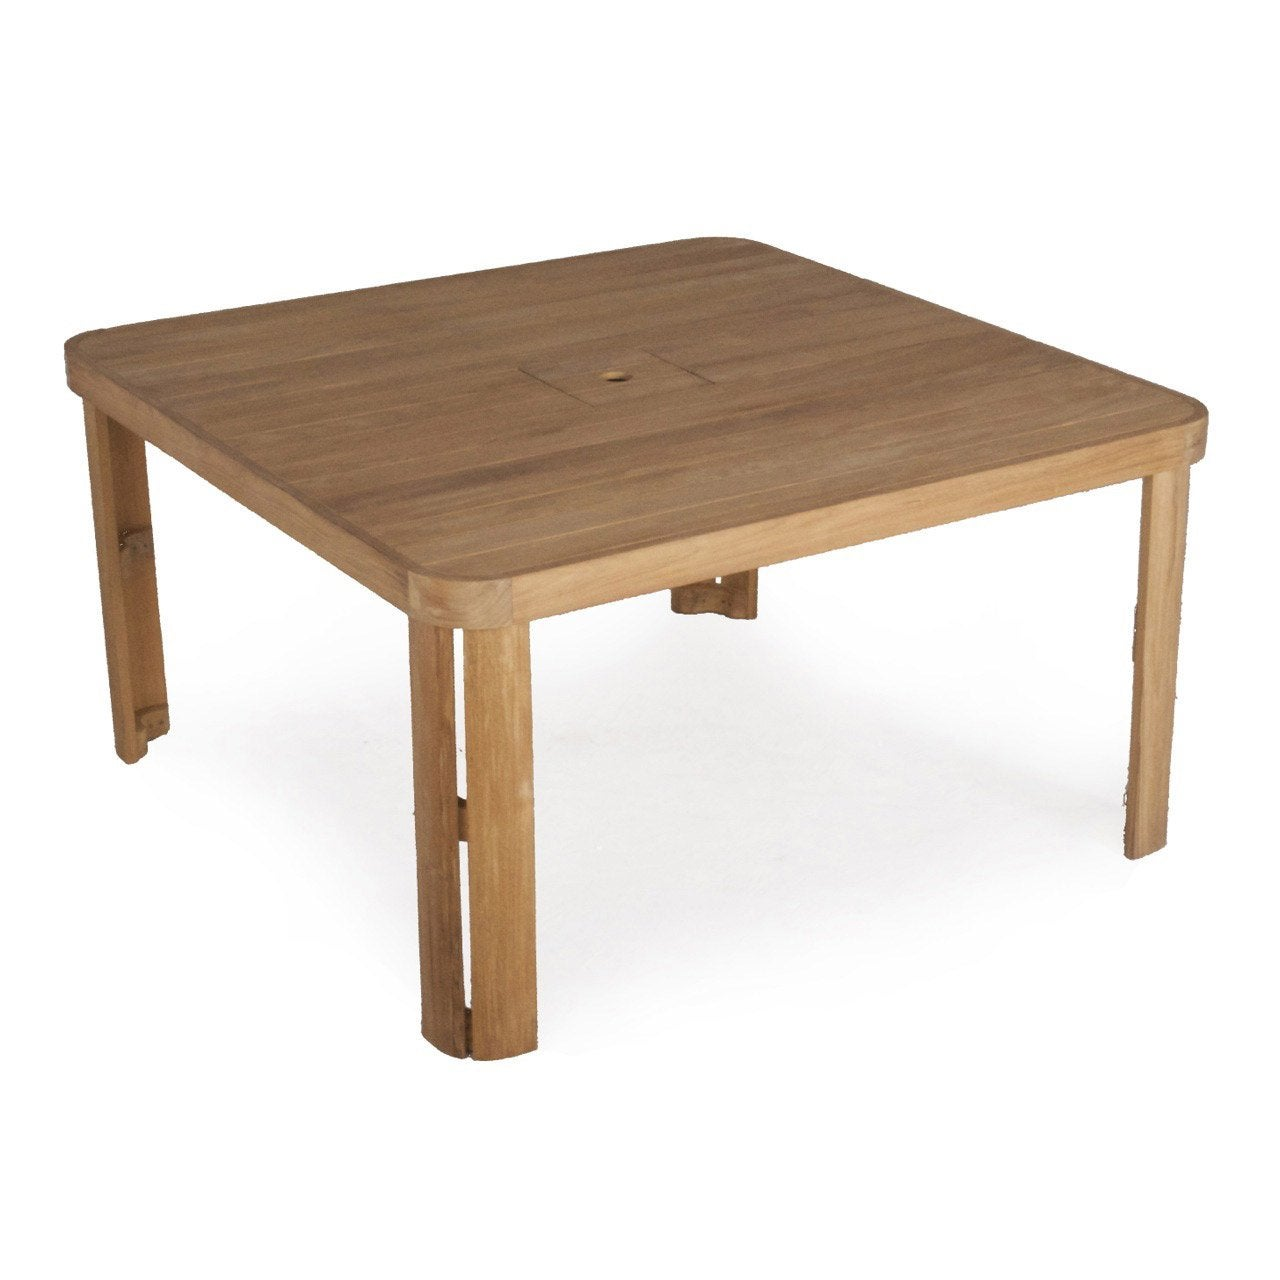 Table de jardin carr e resort naterial leroy merlin - Leroy merlin table jardin ...